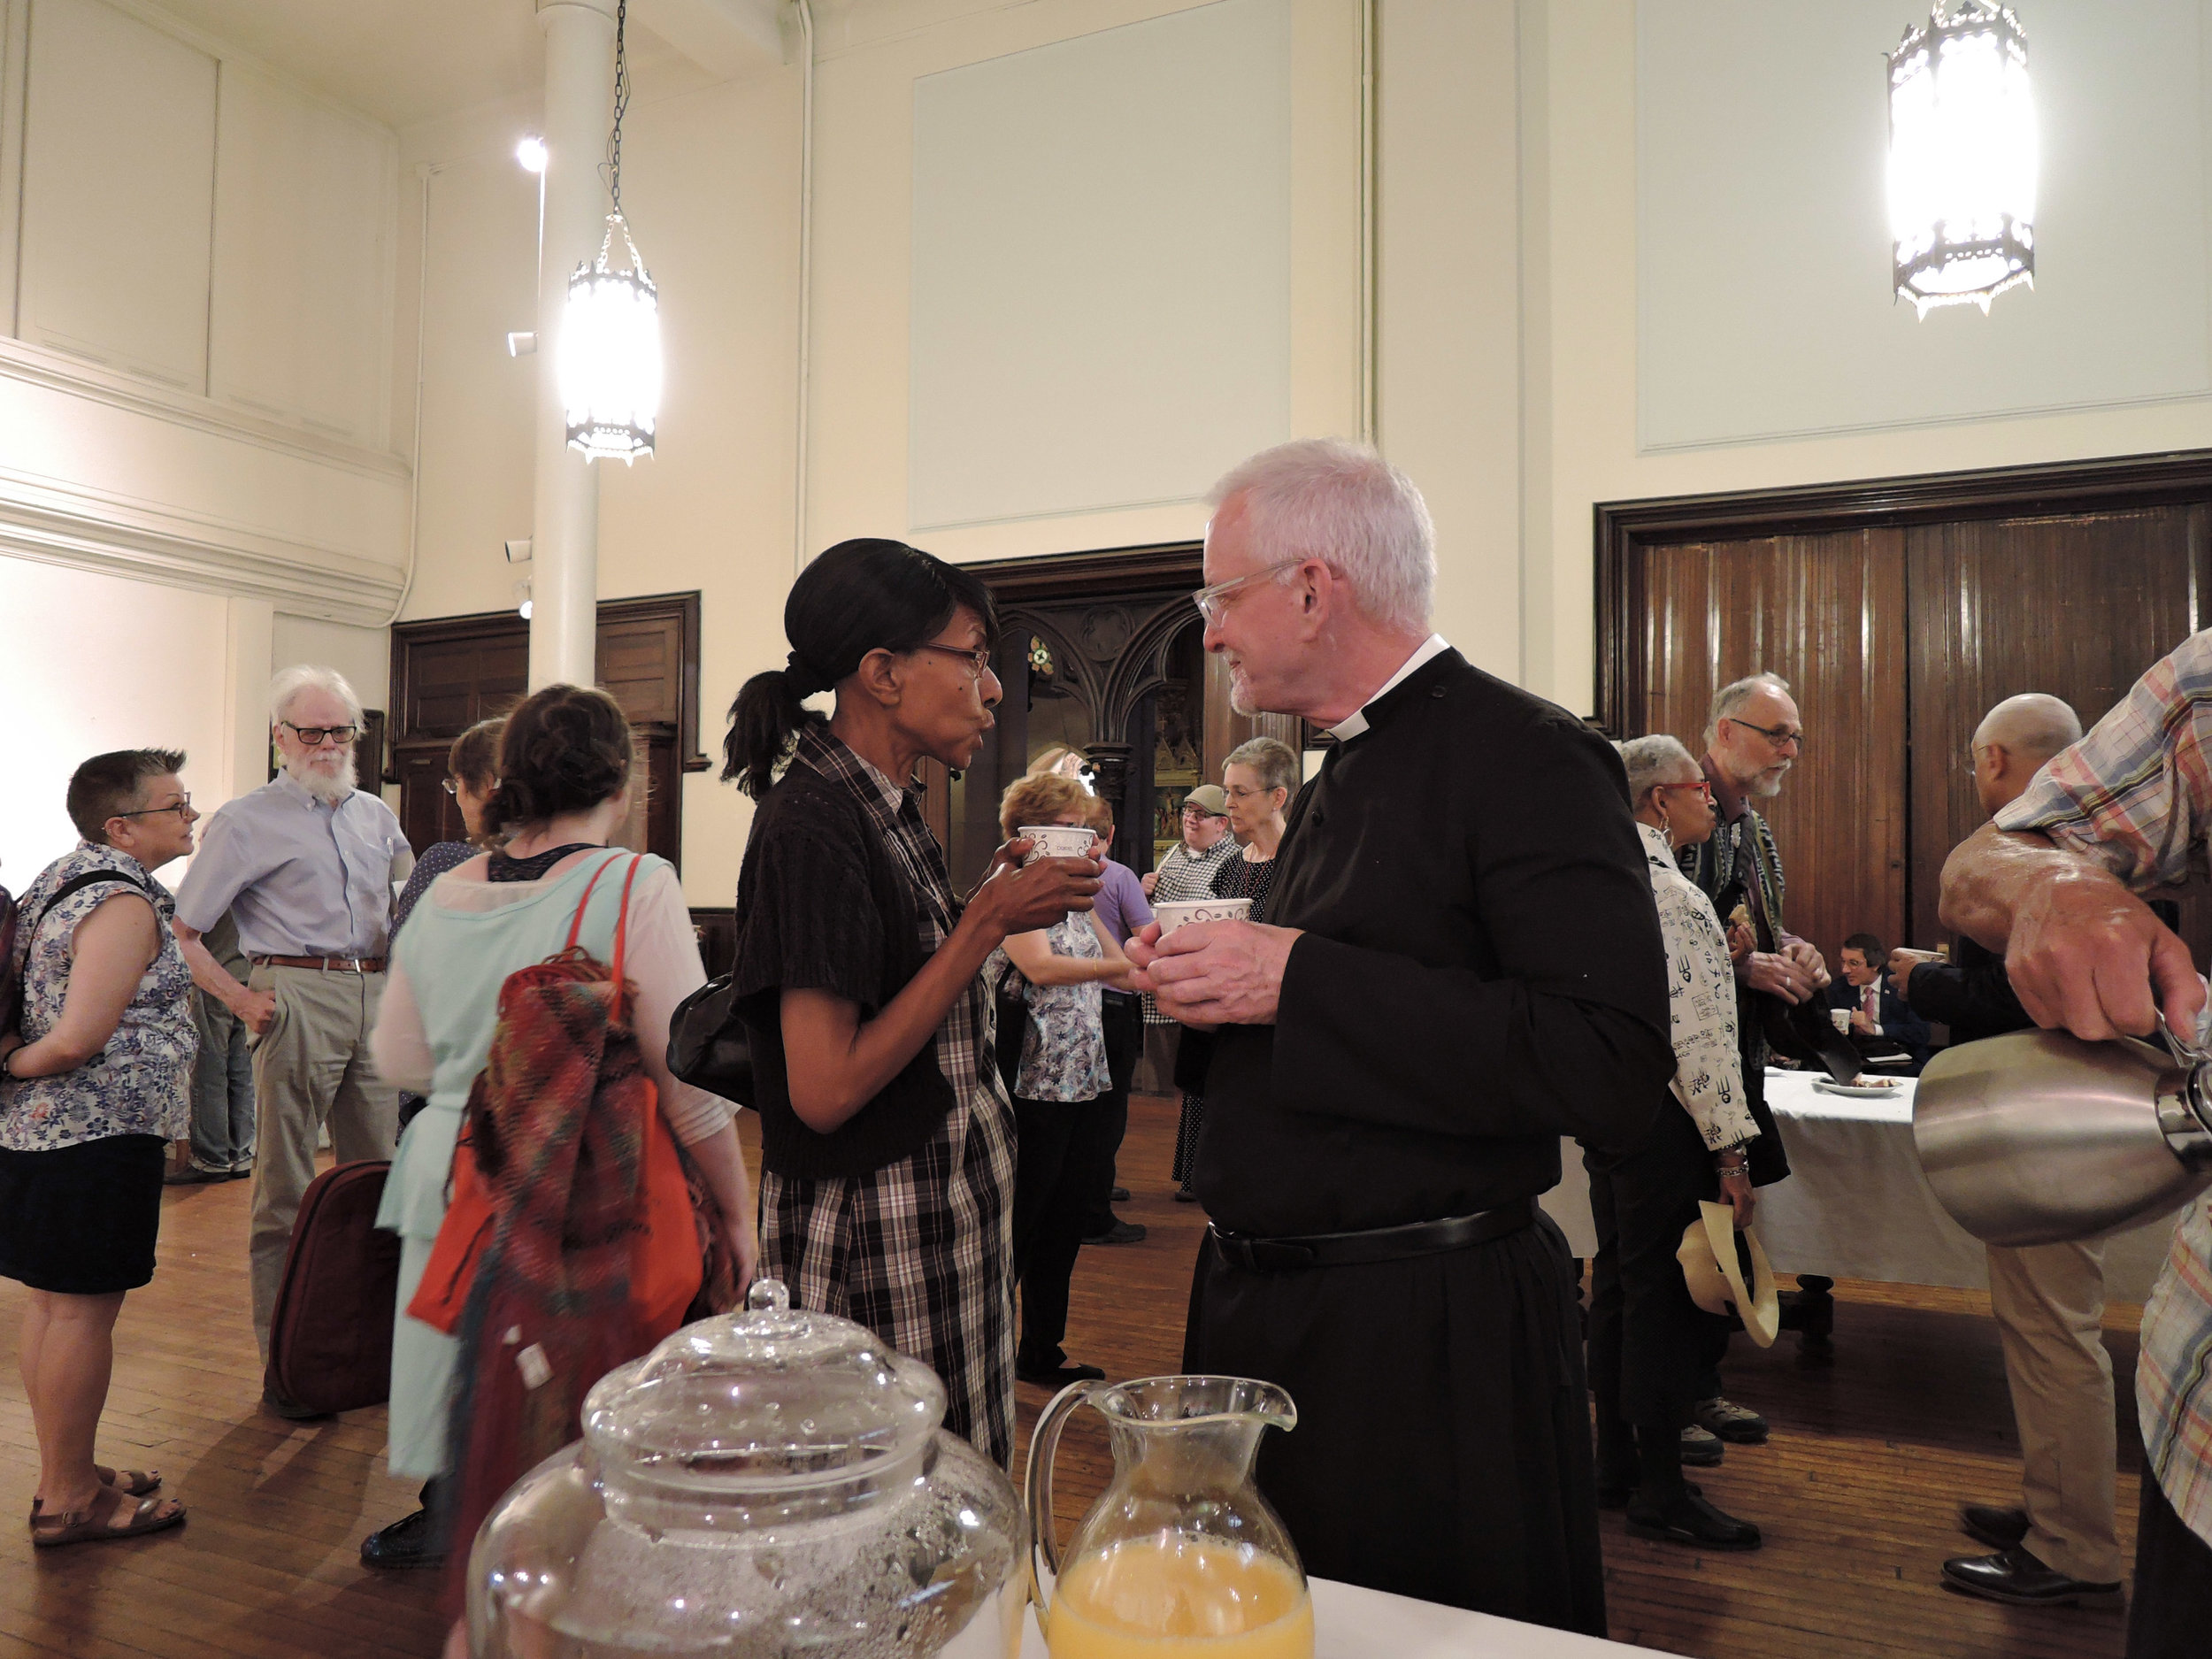 Sharon Stewart chats with Father Pace at Coffee Hour.